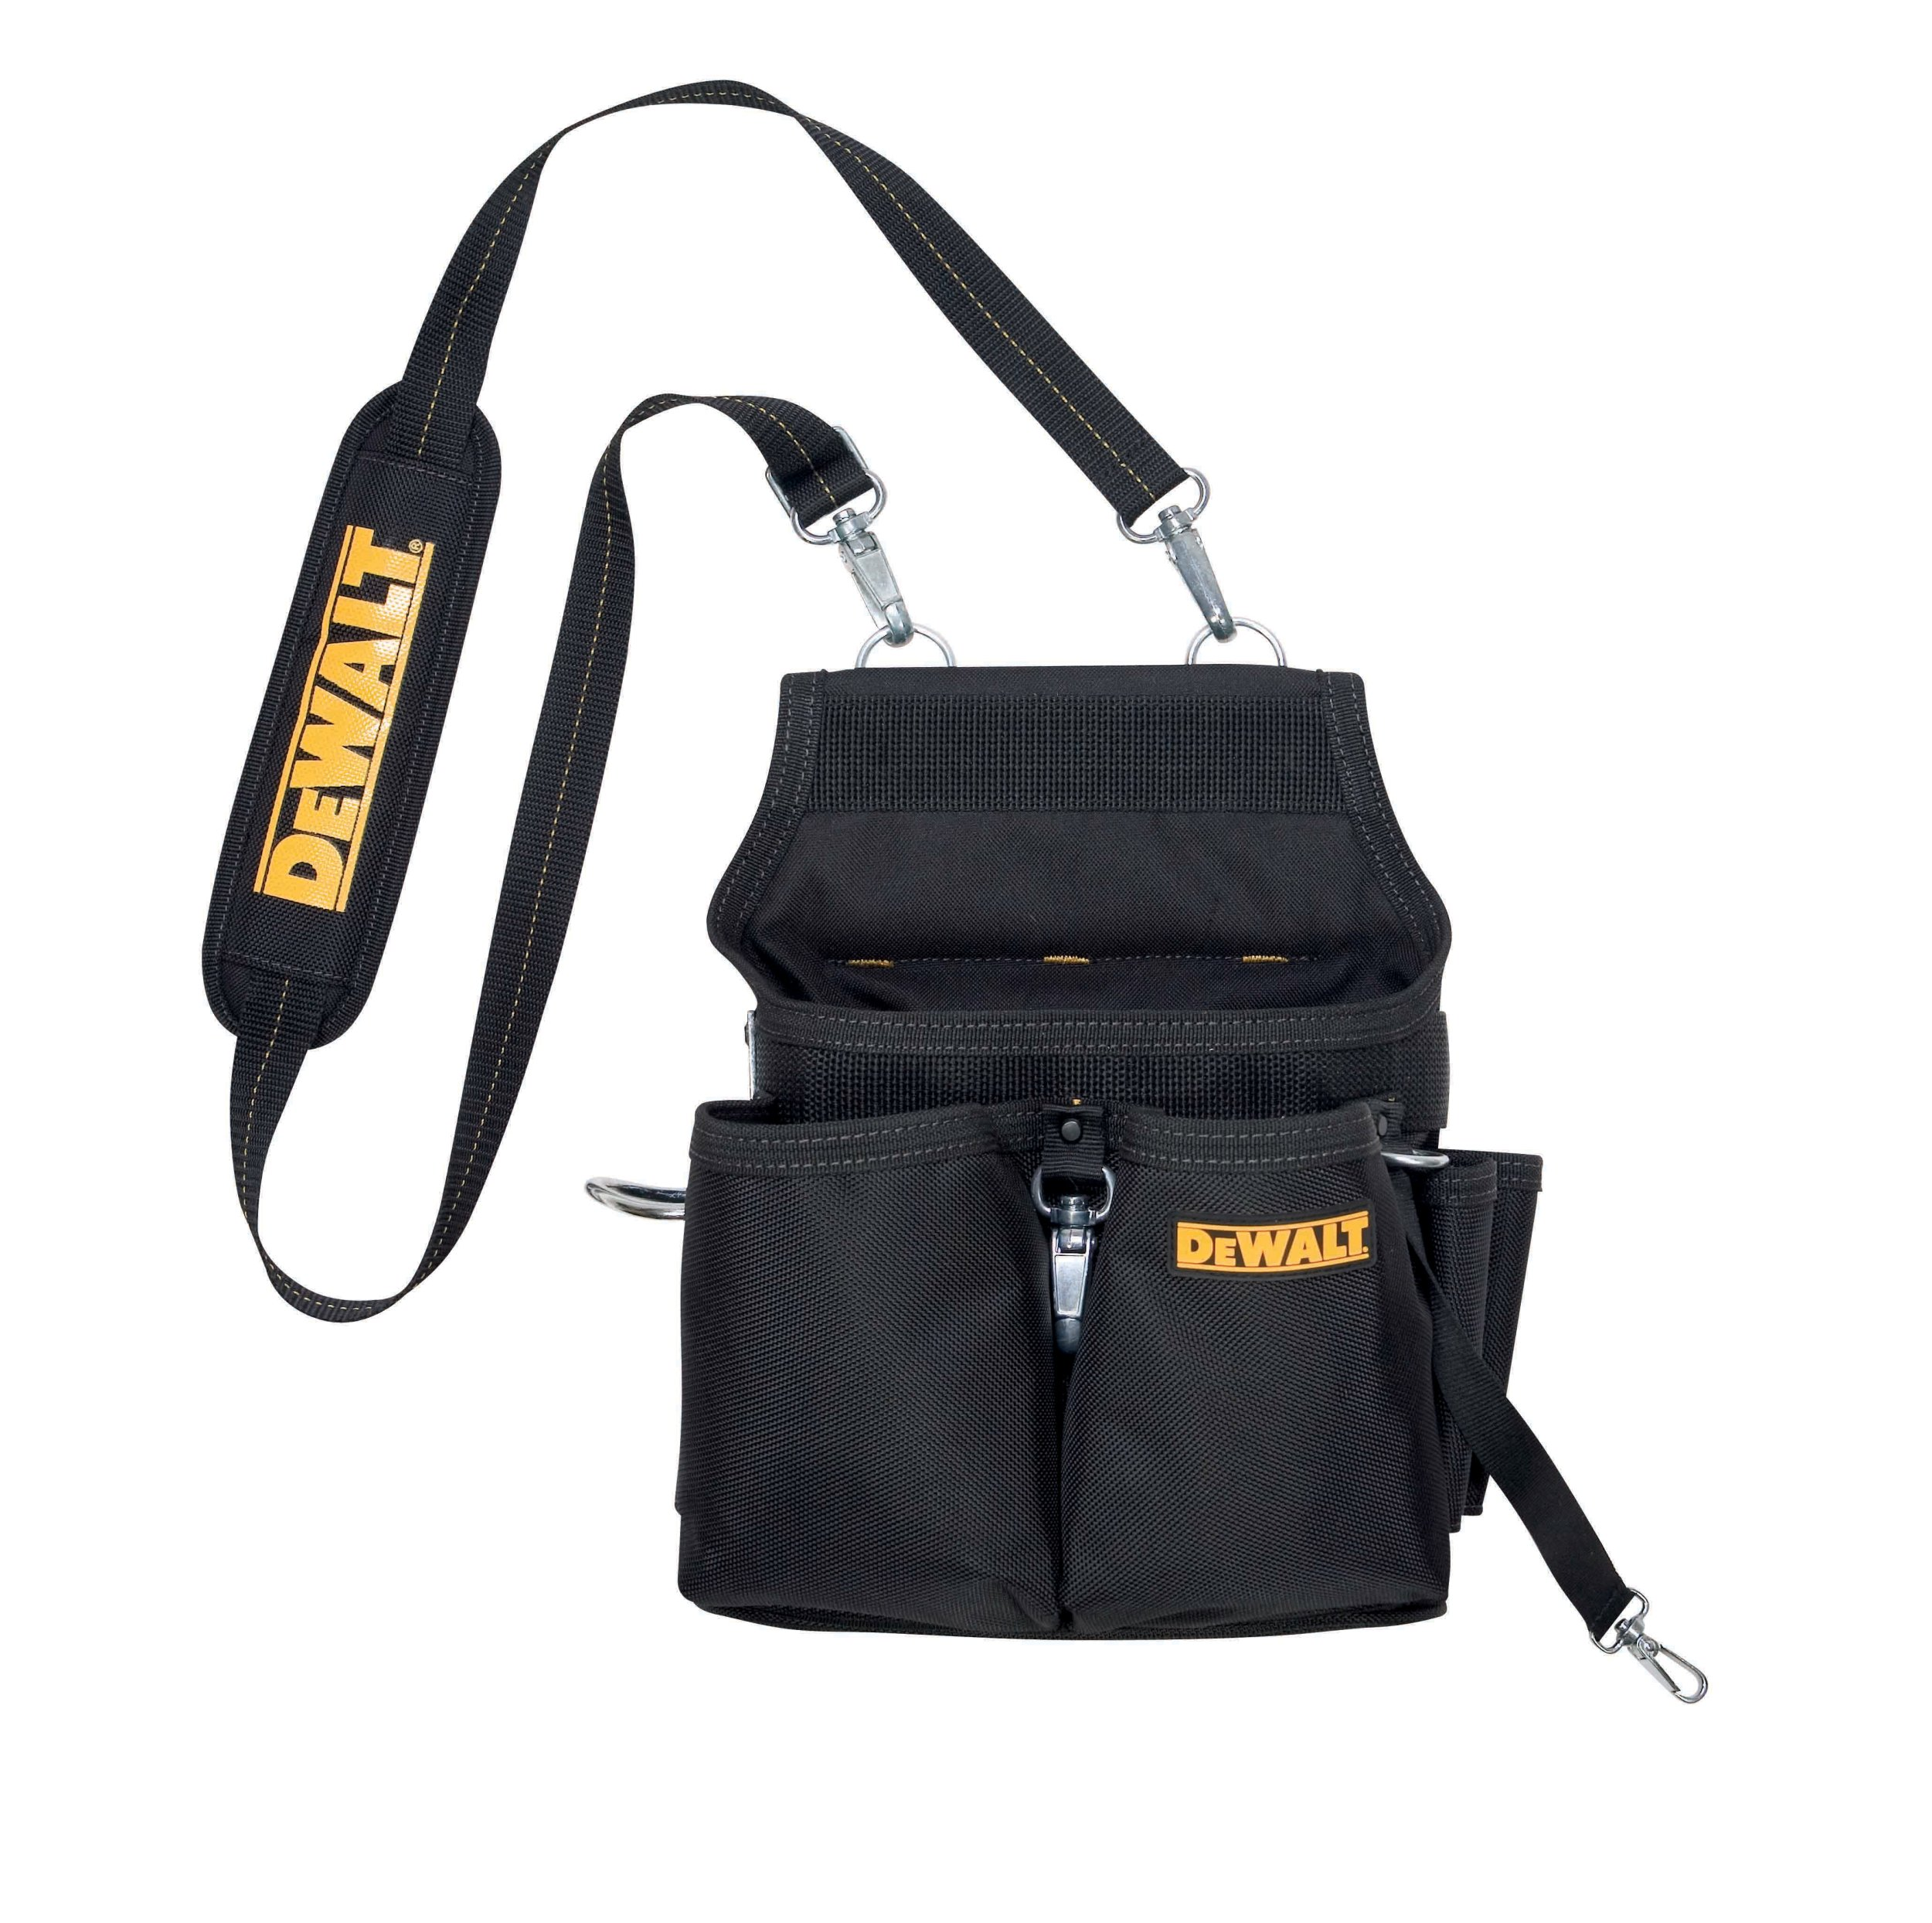 DEWALT DG5680 14 Pocket Professional Electrician's Tool Pouch by Custom Leathercraft